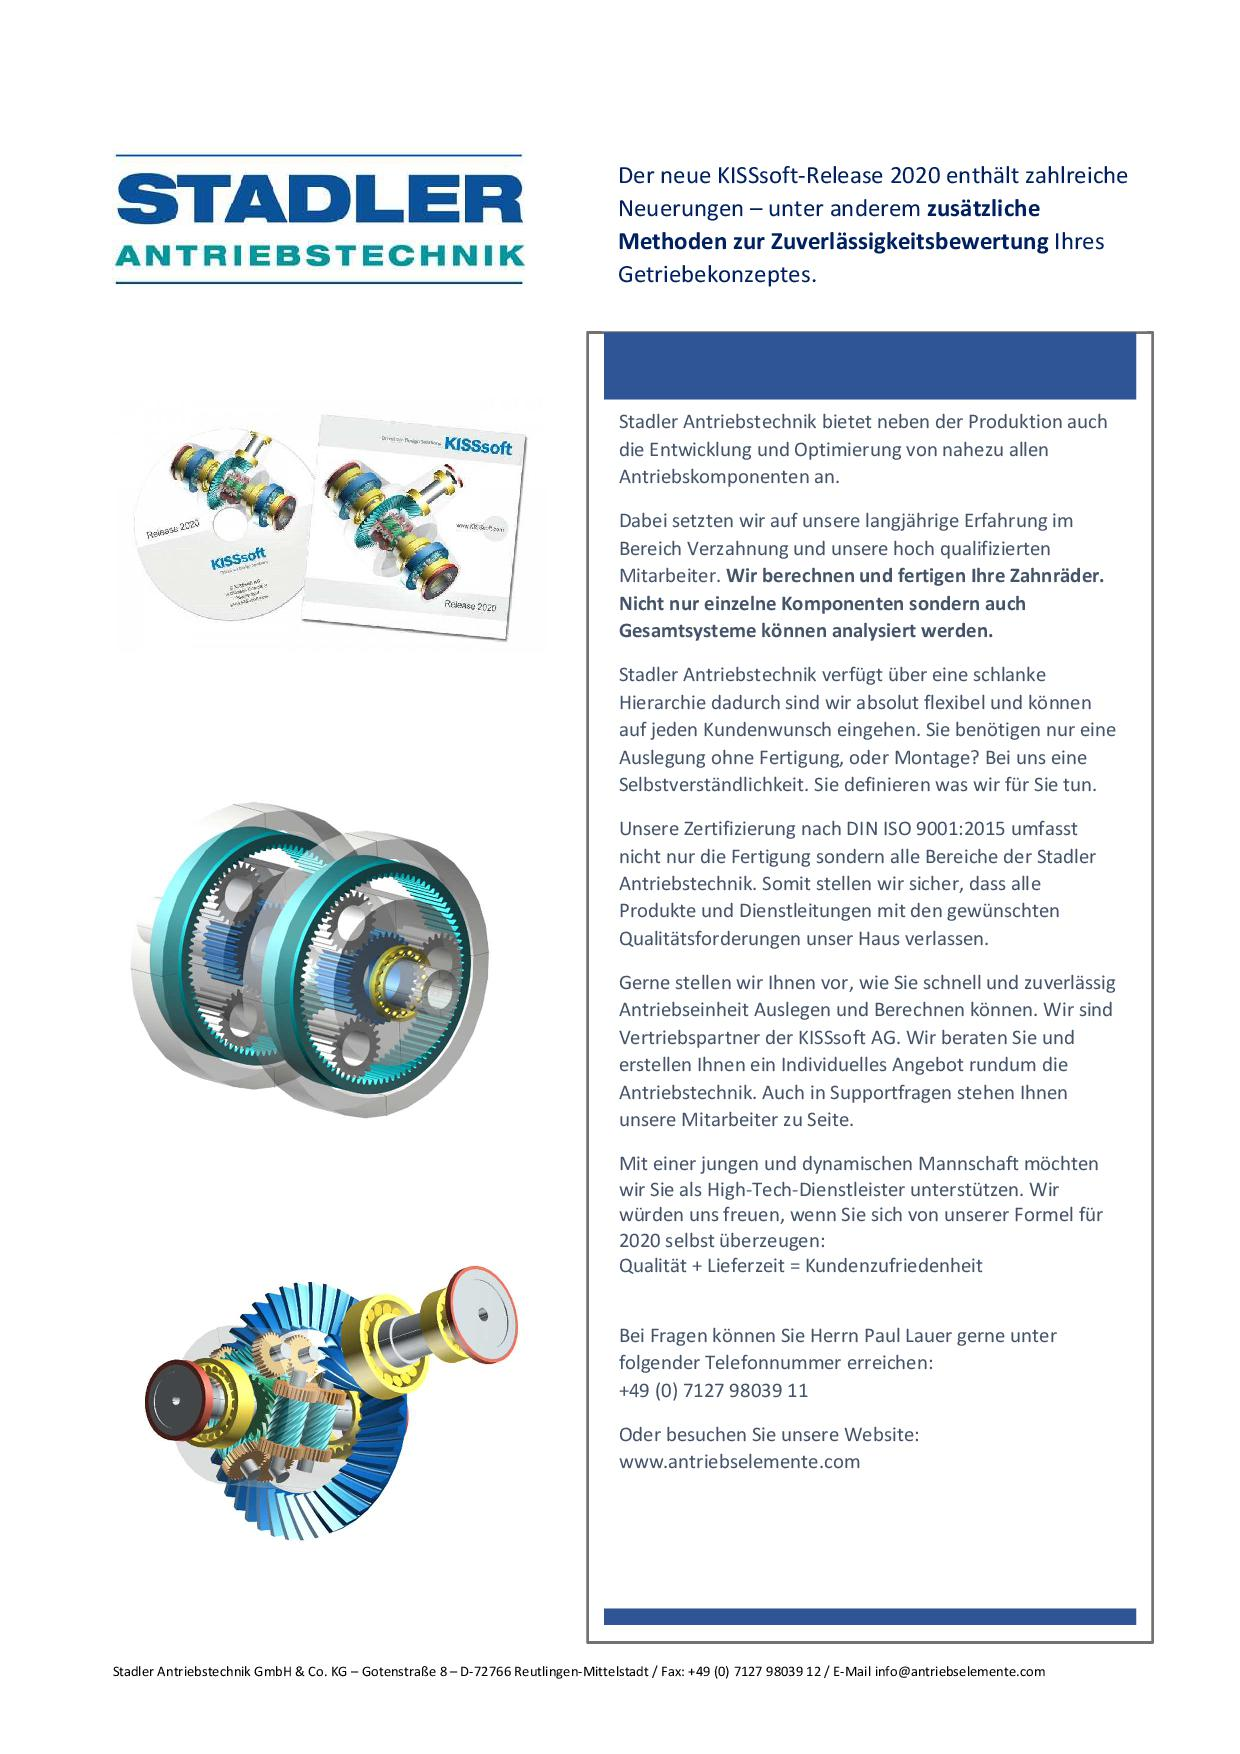 C Users smg Desktop Engineering Flyer NEW 2020